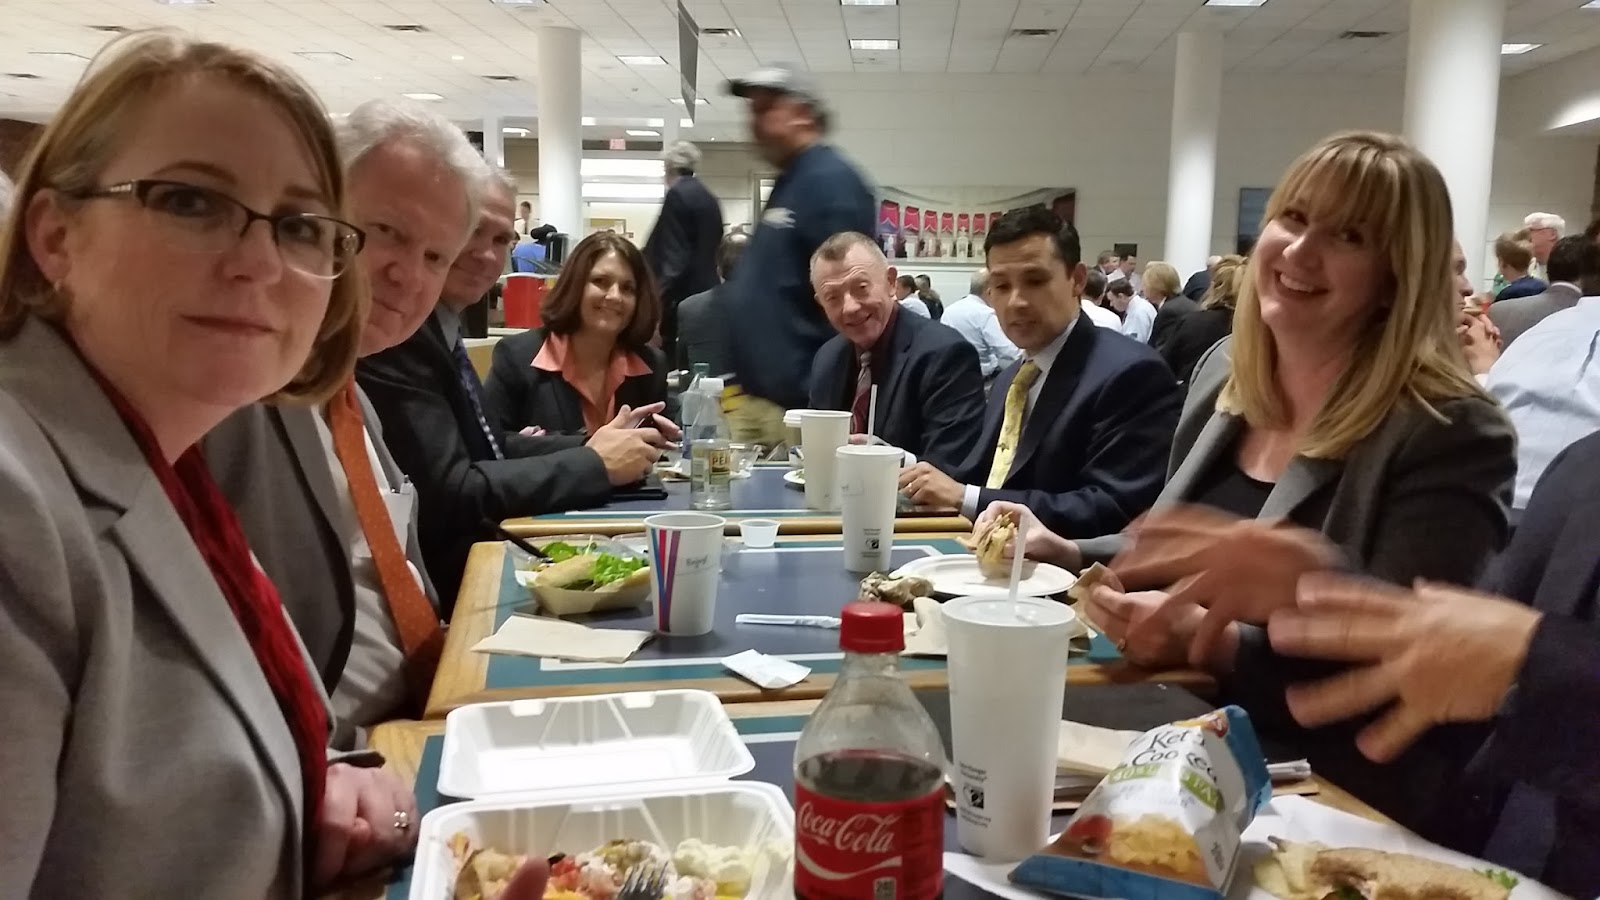 Washington DC CEO Summit 2016 - Lunch%2BBreak.jpg